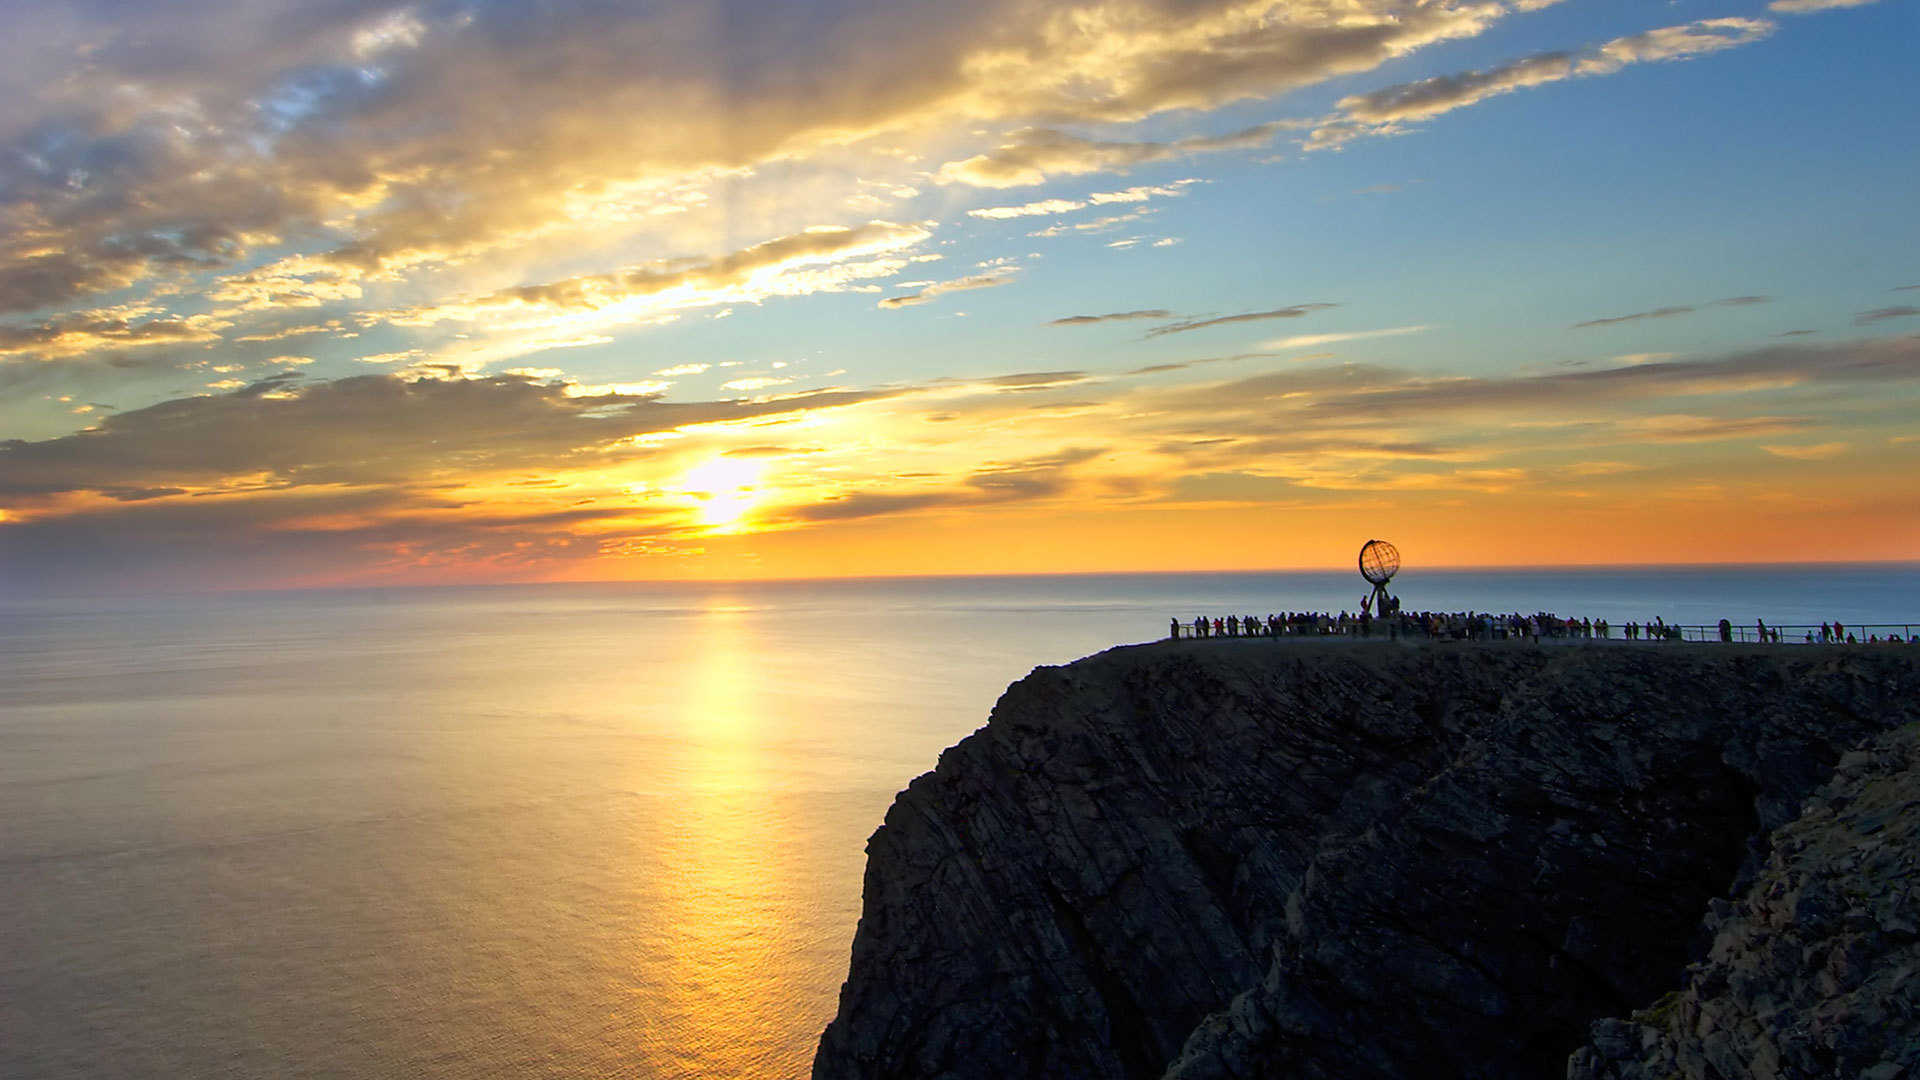 Midnight sun at the North Cape, Norway